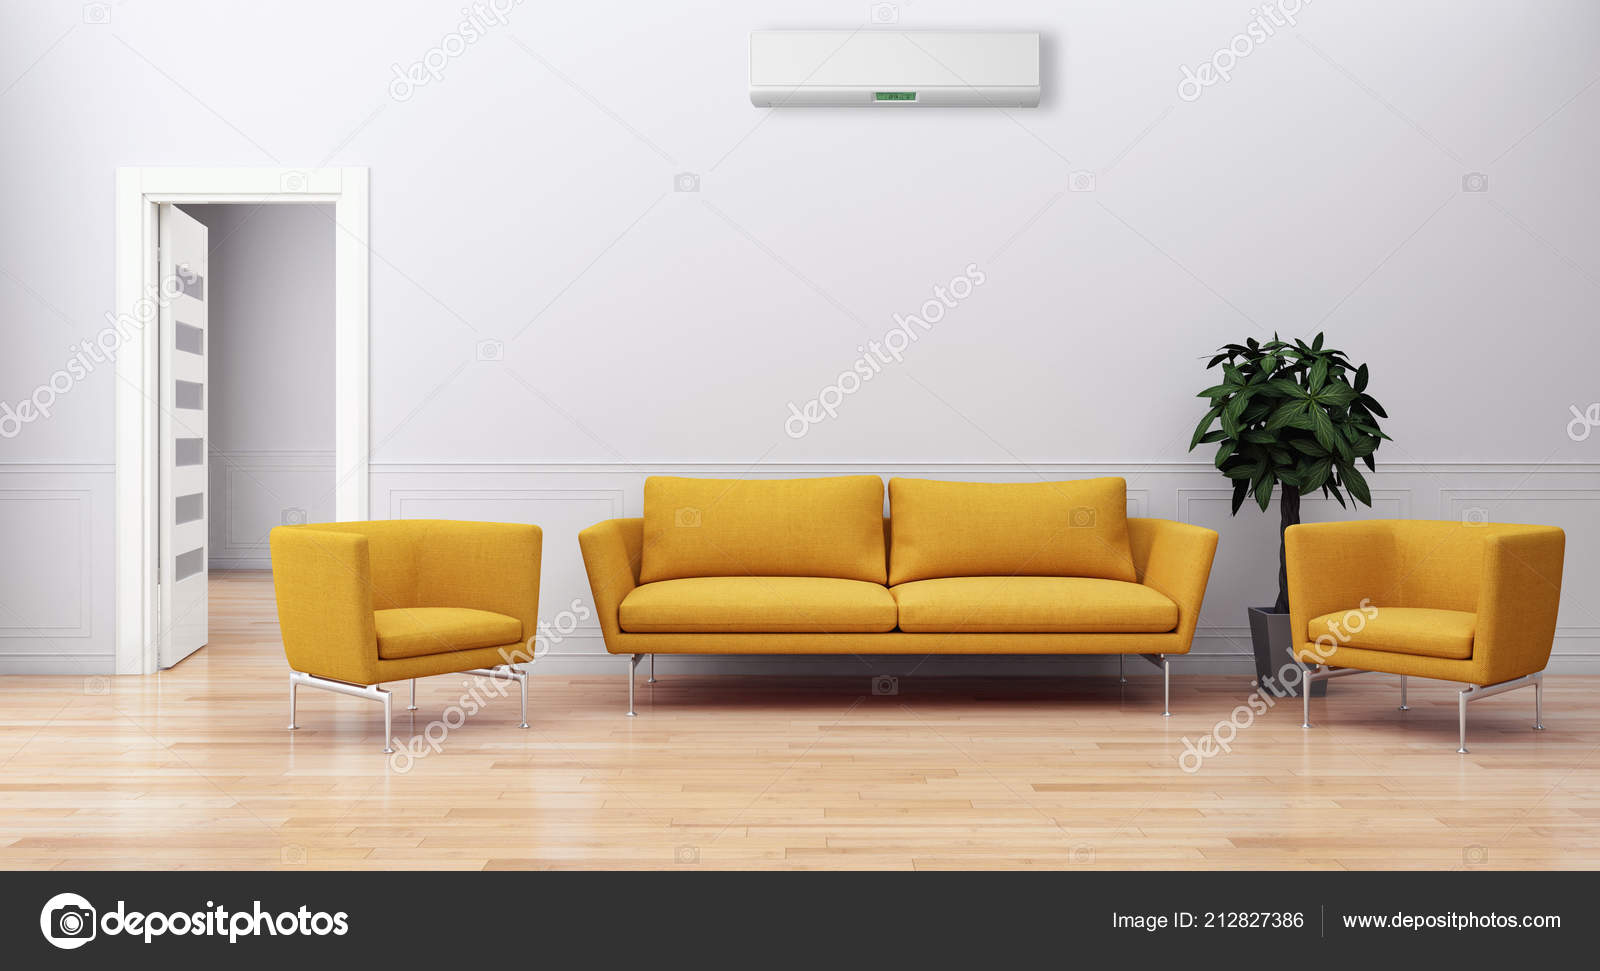 Modern bright living room Small Modern Bright Interiors Apartment Living Room Air Conditioning Illustration Rendering Stock Photo Depositphotos Modern Bright Interiors Apartment Living Room Air Conditioning